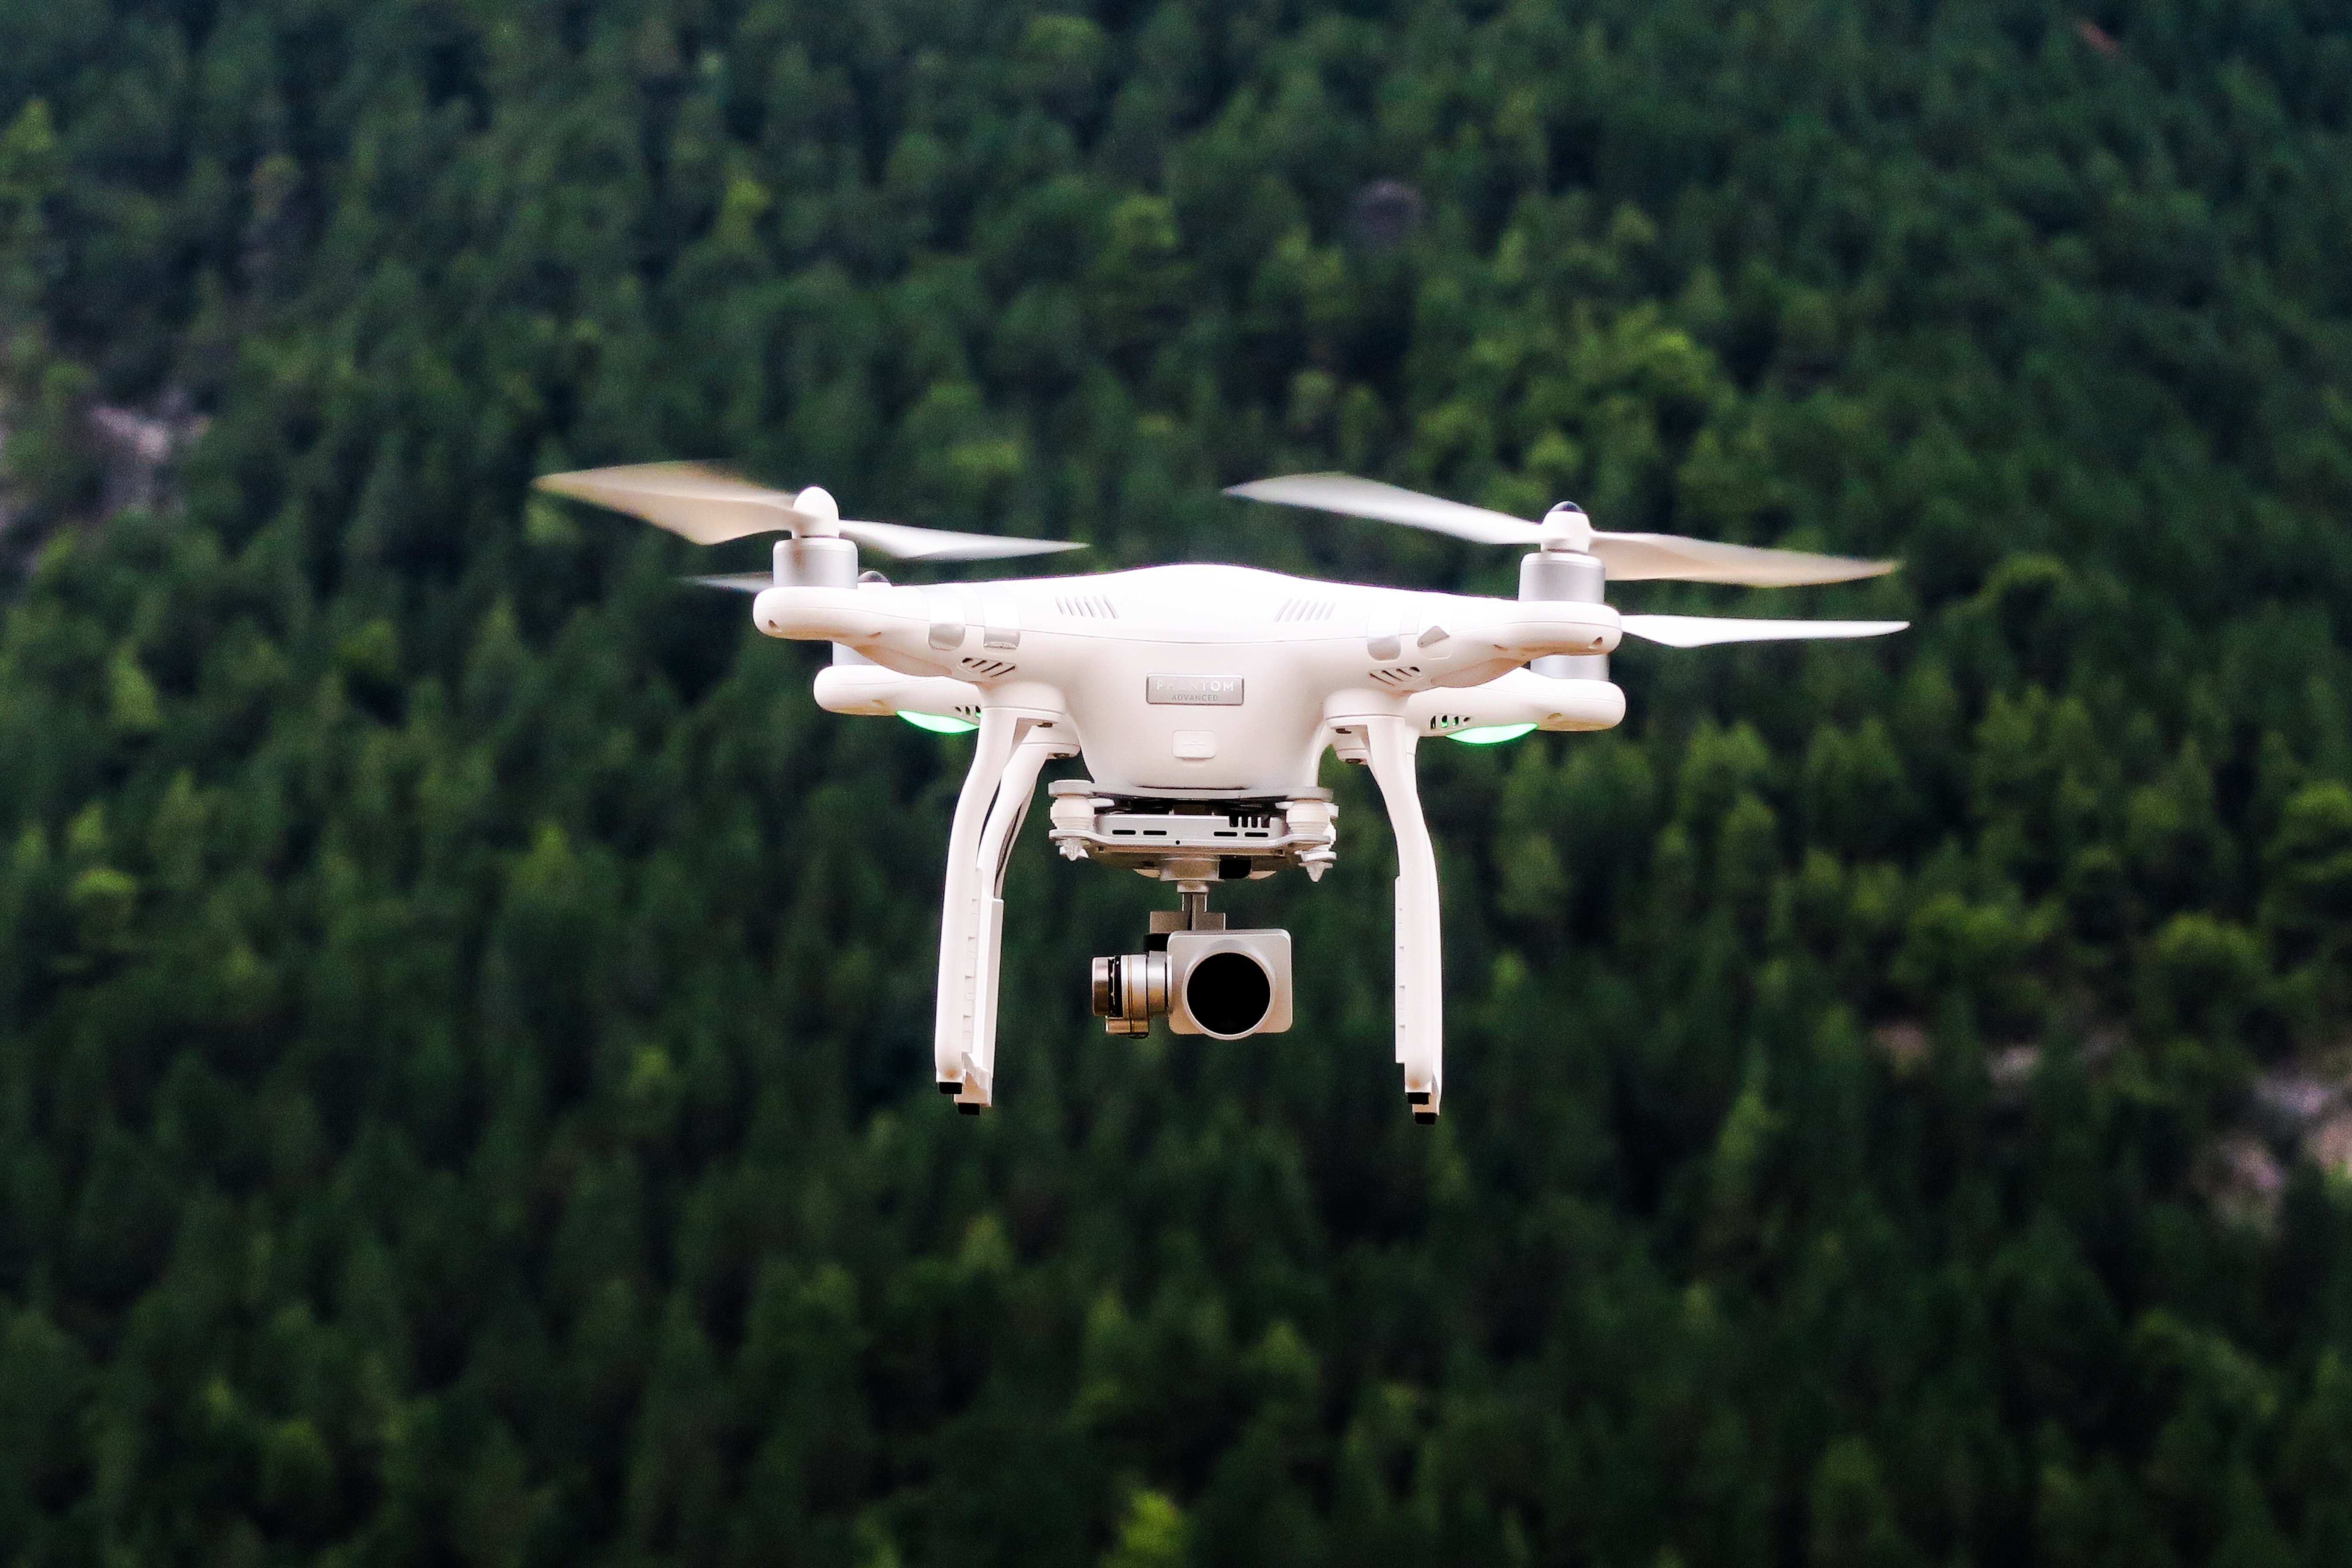 Free download high resolution image - free image free photo free stock image public domain picture -white drone hovering